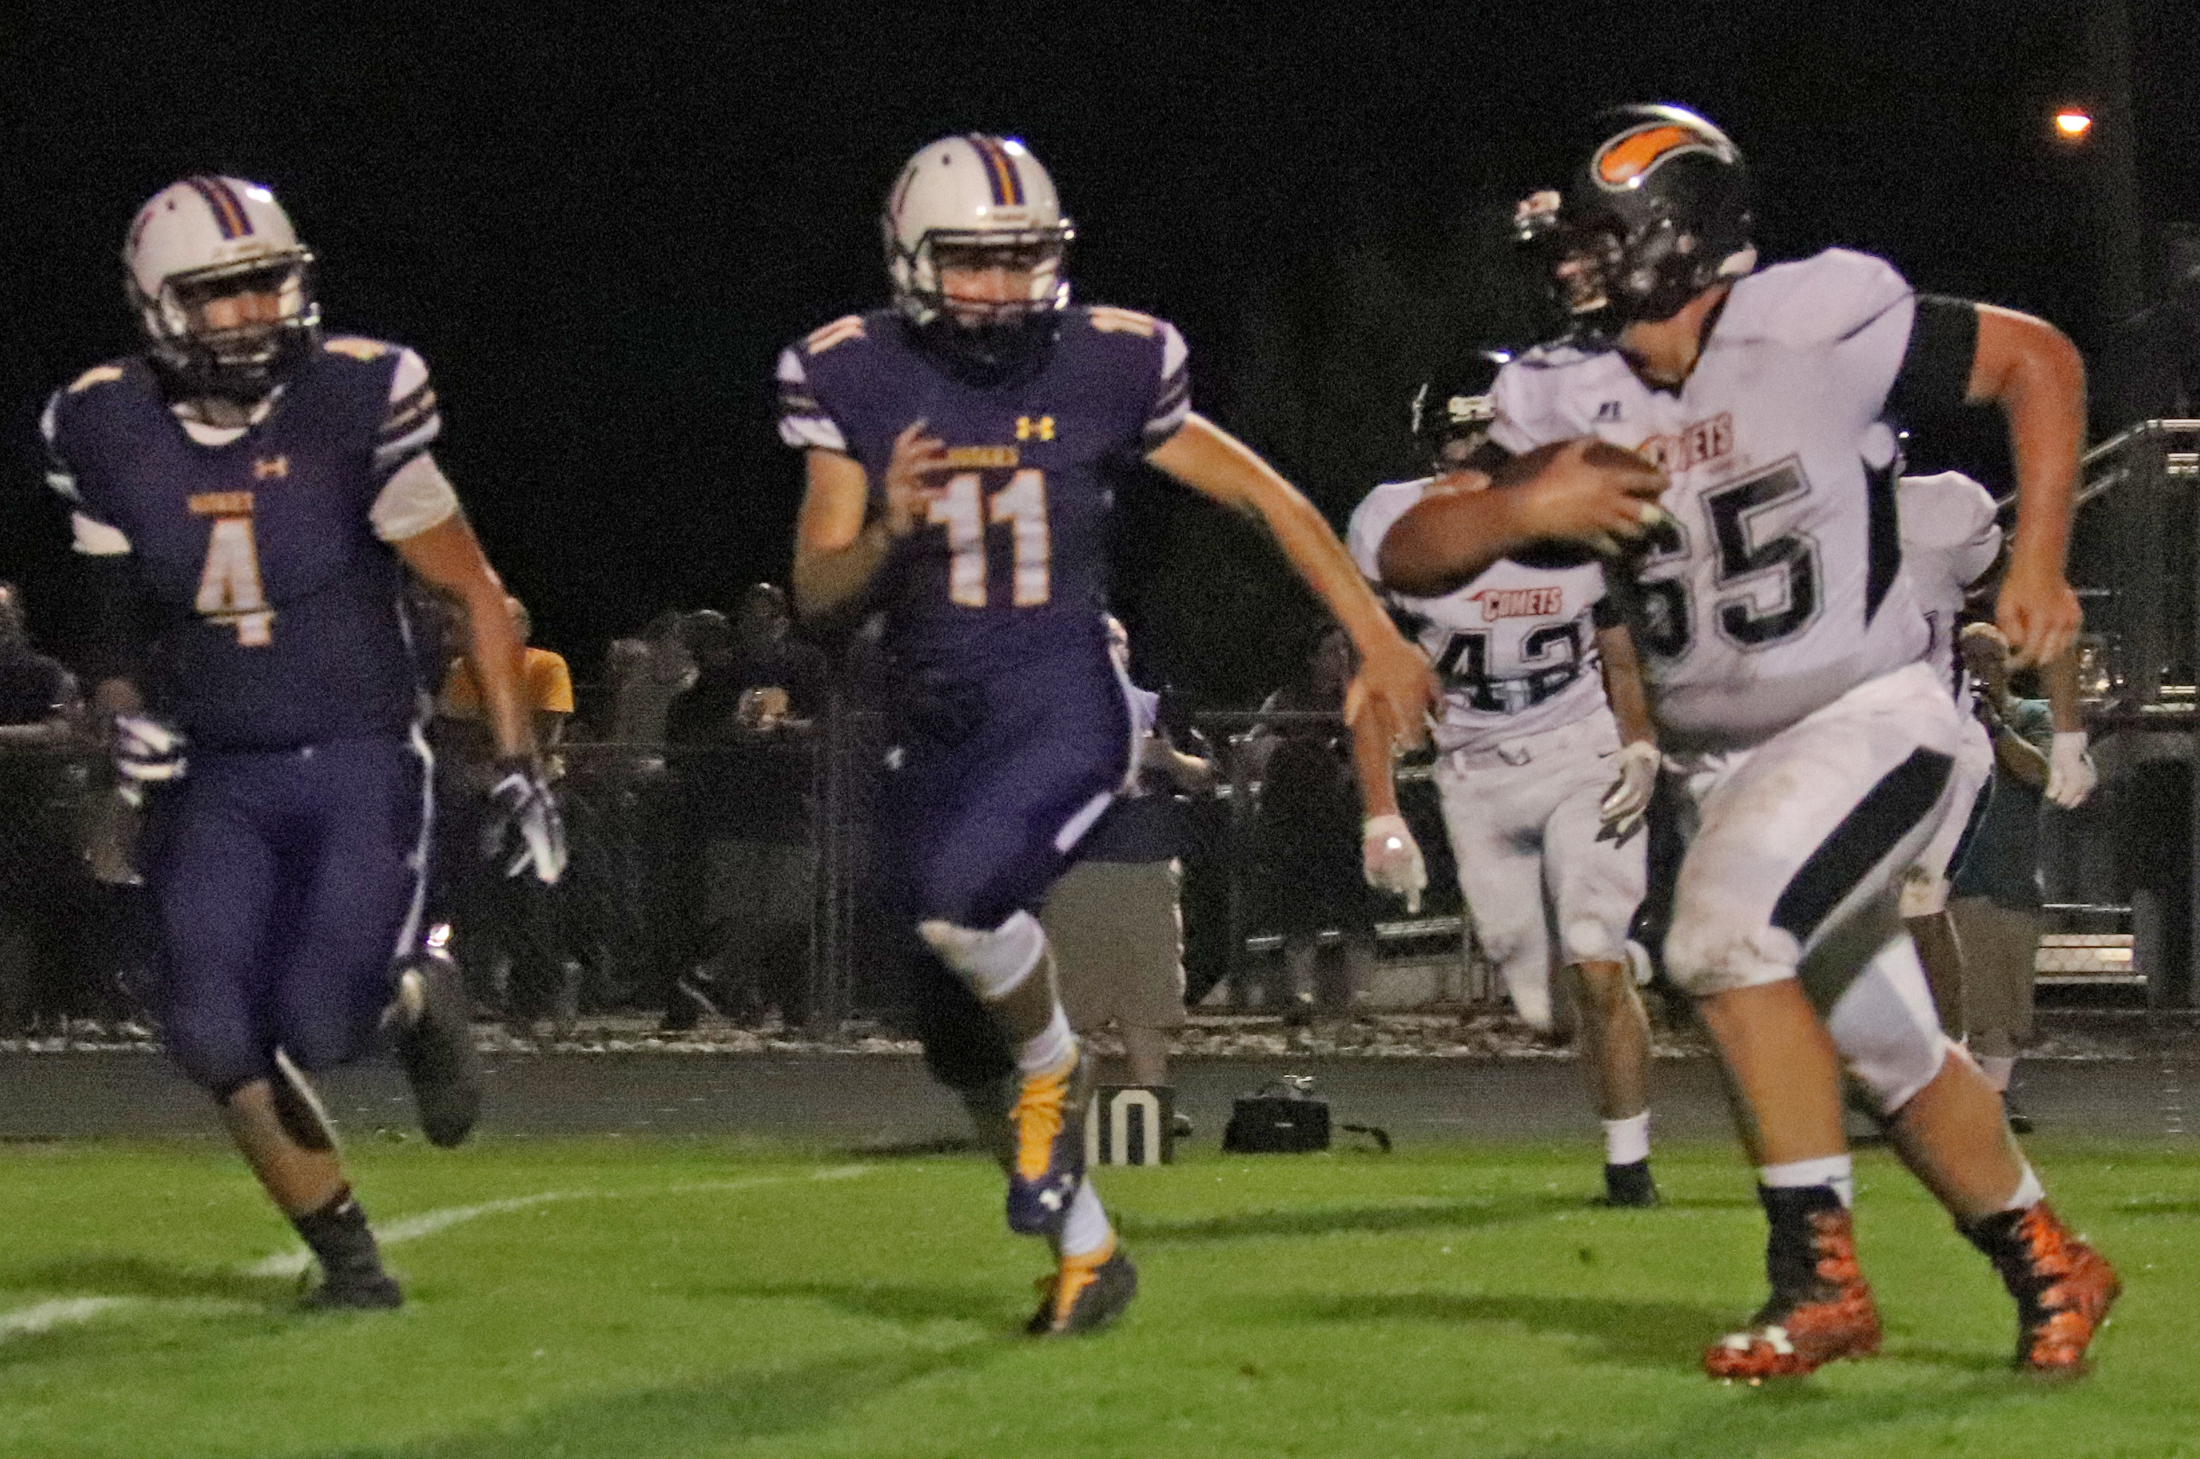 Comets defeat Huskies, 33-16, to open district play